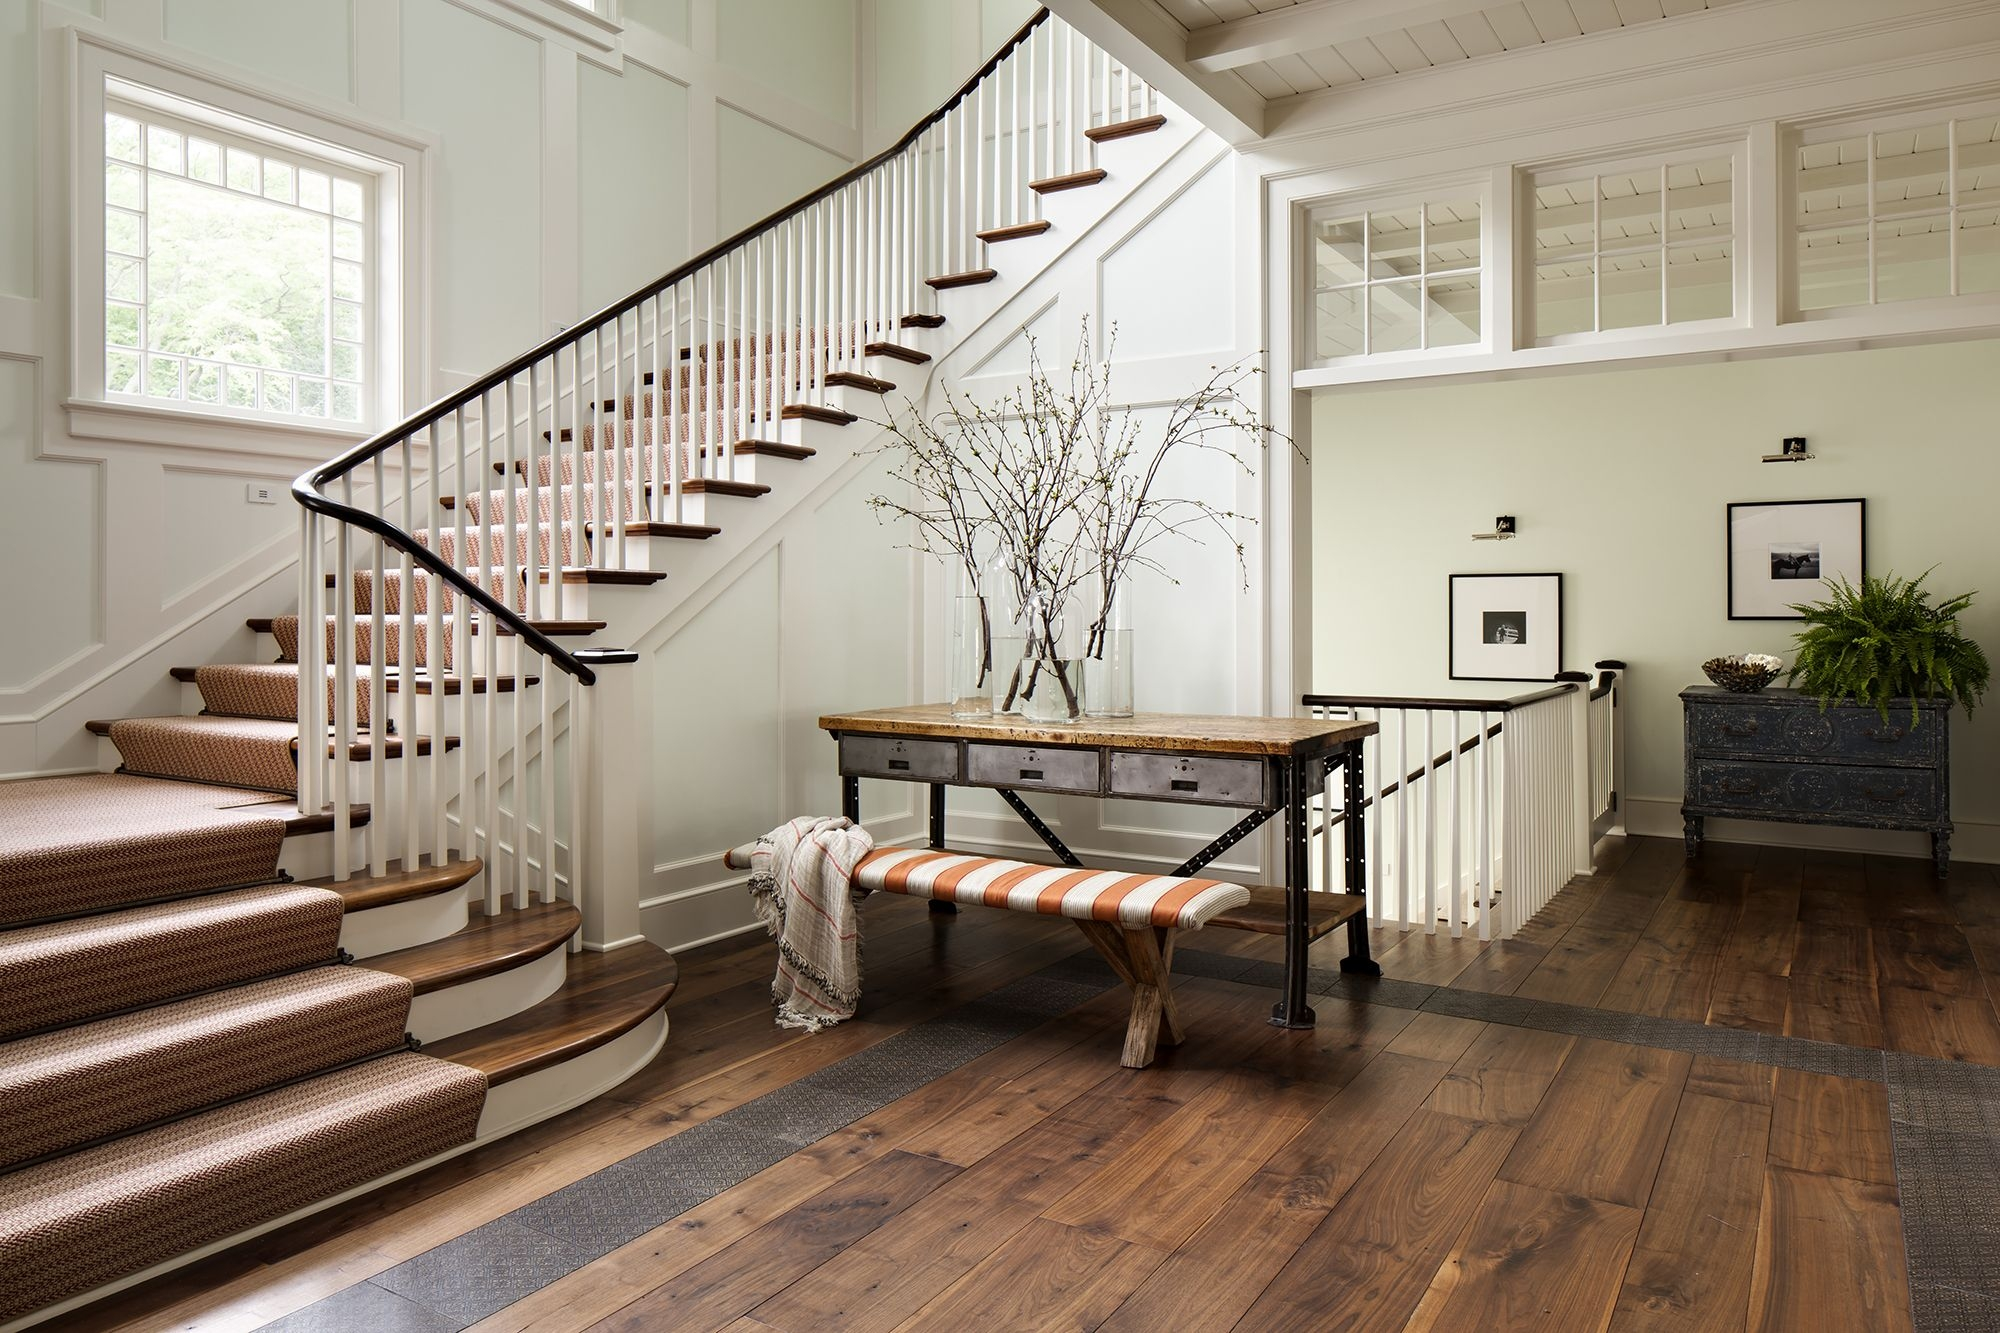 27 Stylish Staircase Decorating Ideas How To Decorate Stairways   Staircase Side Window Designs   Outside Window Frame   Architecture   Small Space   Two Story   Landing